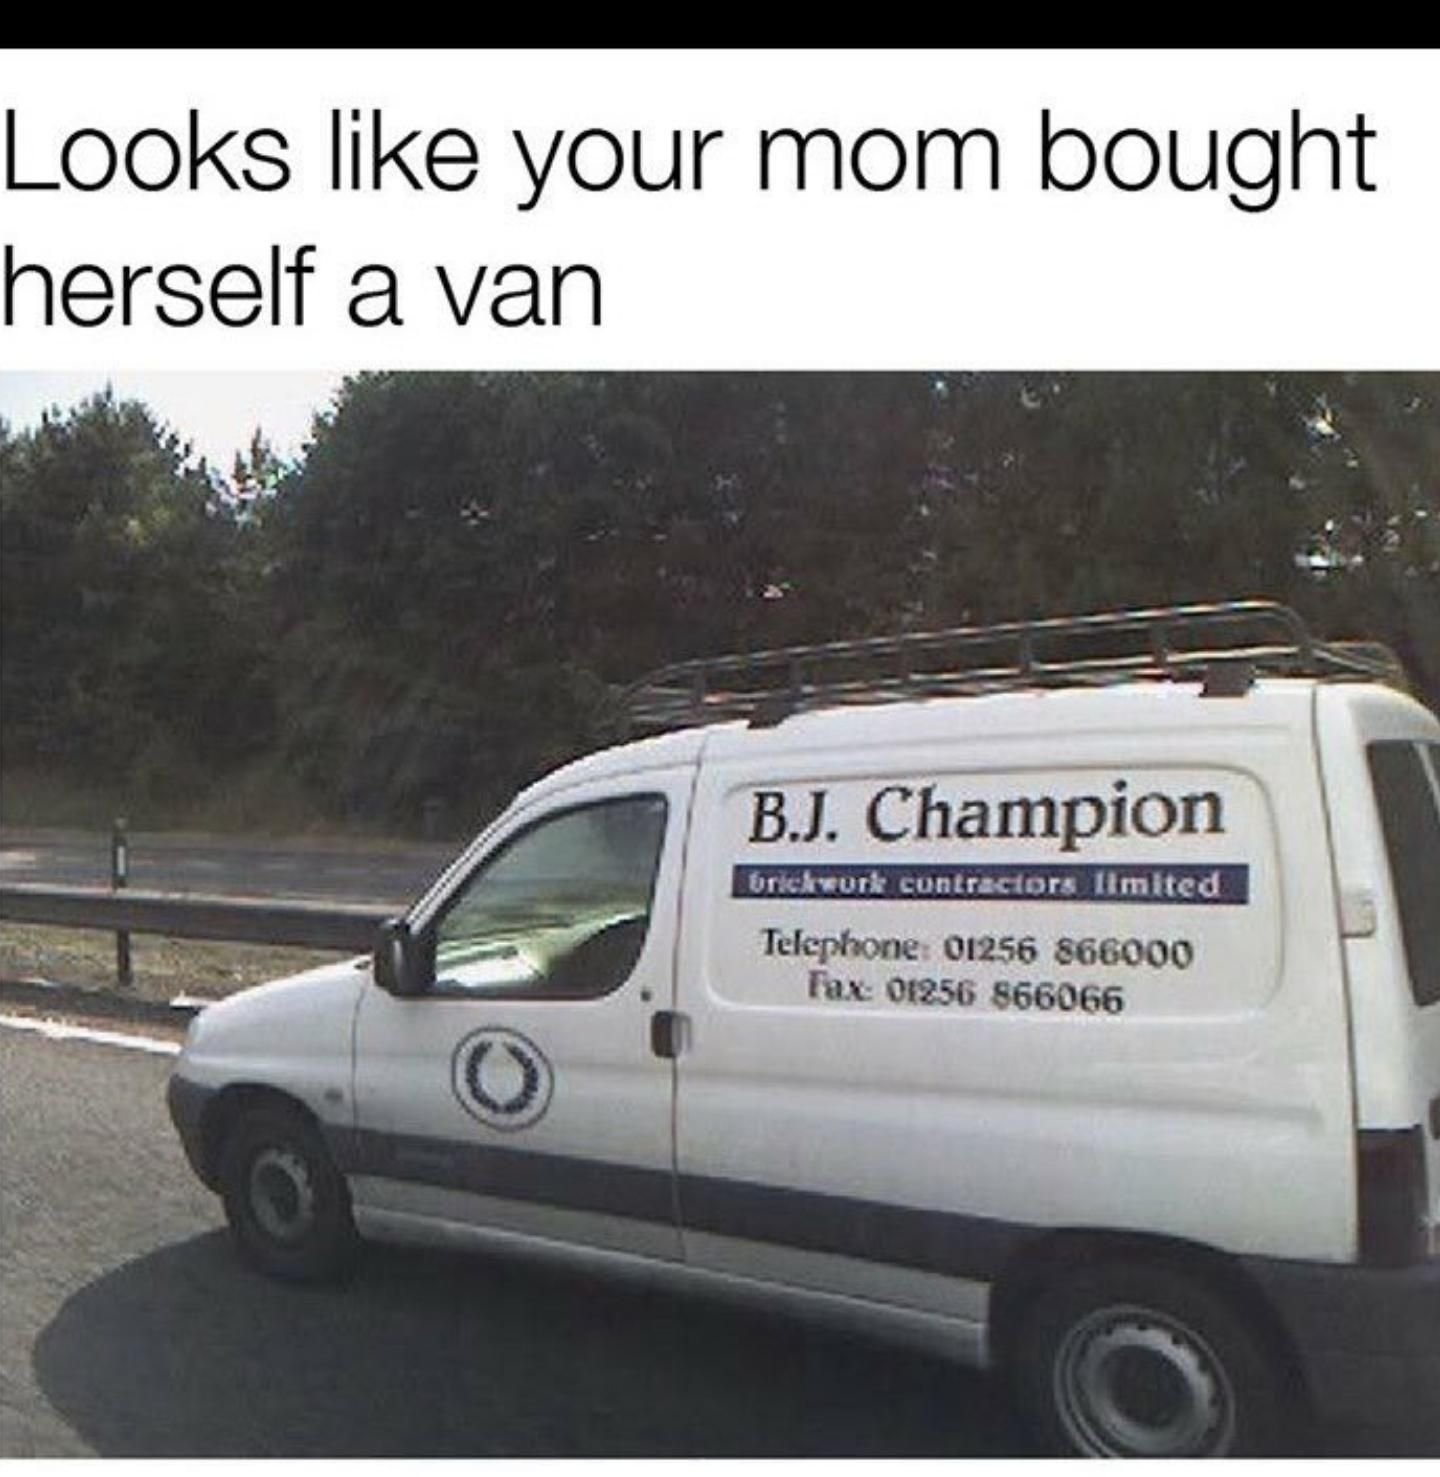 Your mom's work truck